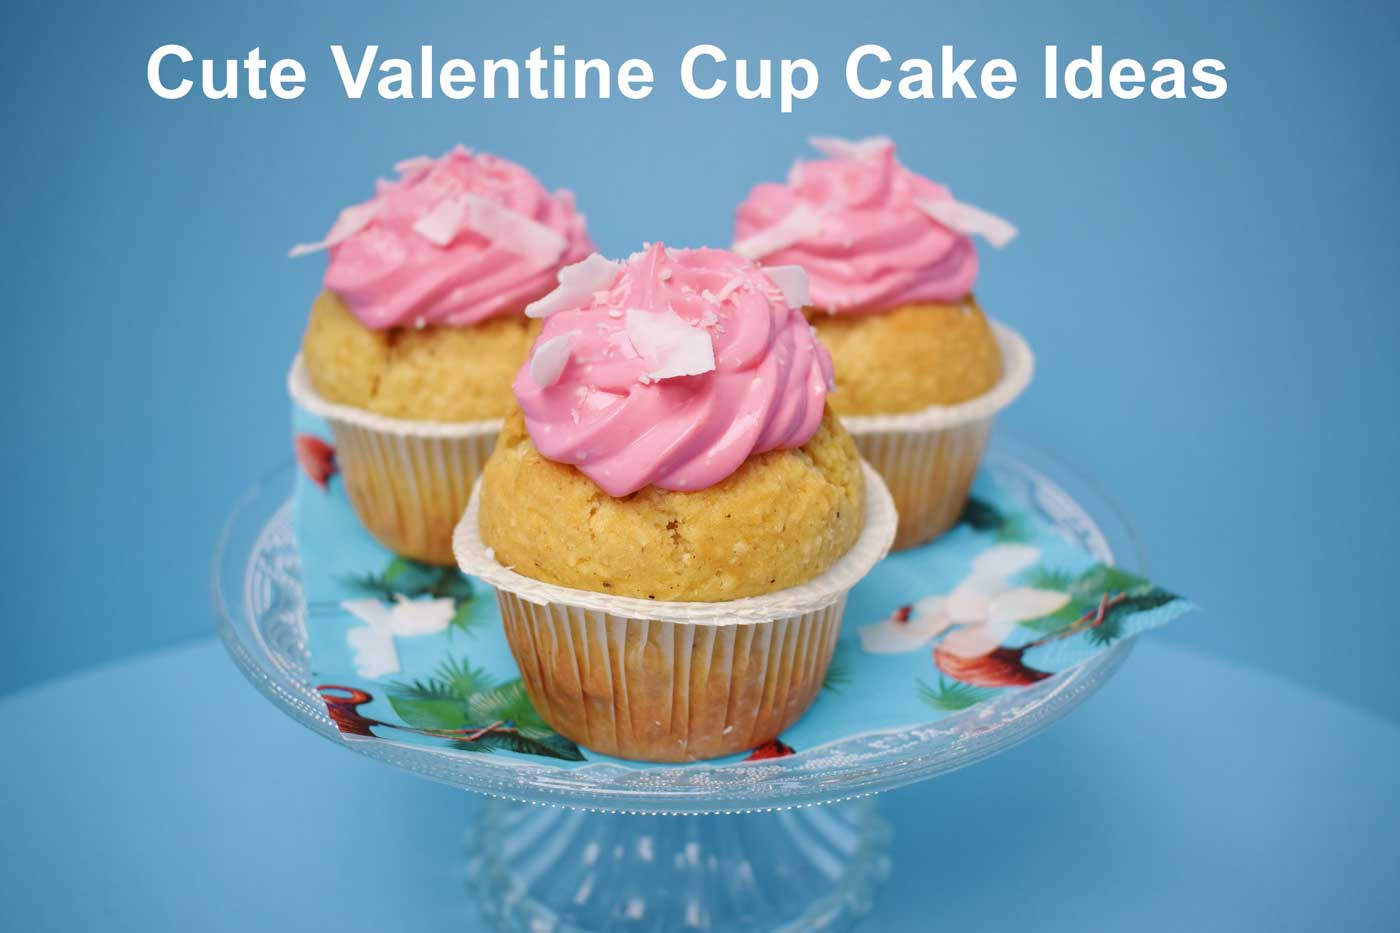 Cute Valentine Cup Cake Ideas to express your love